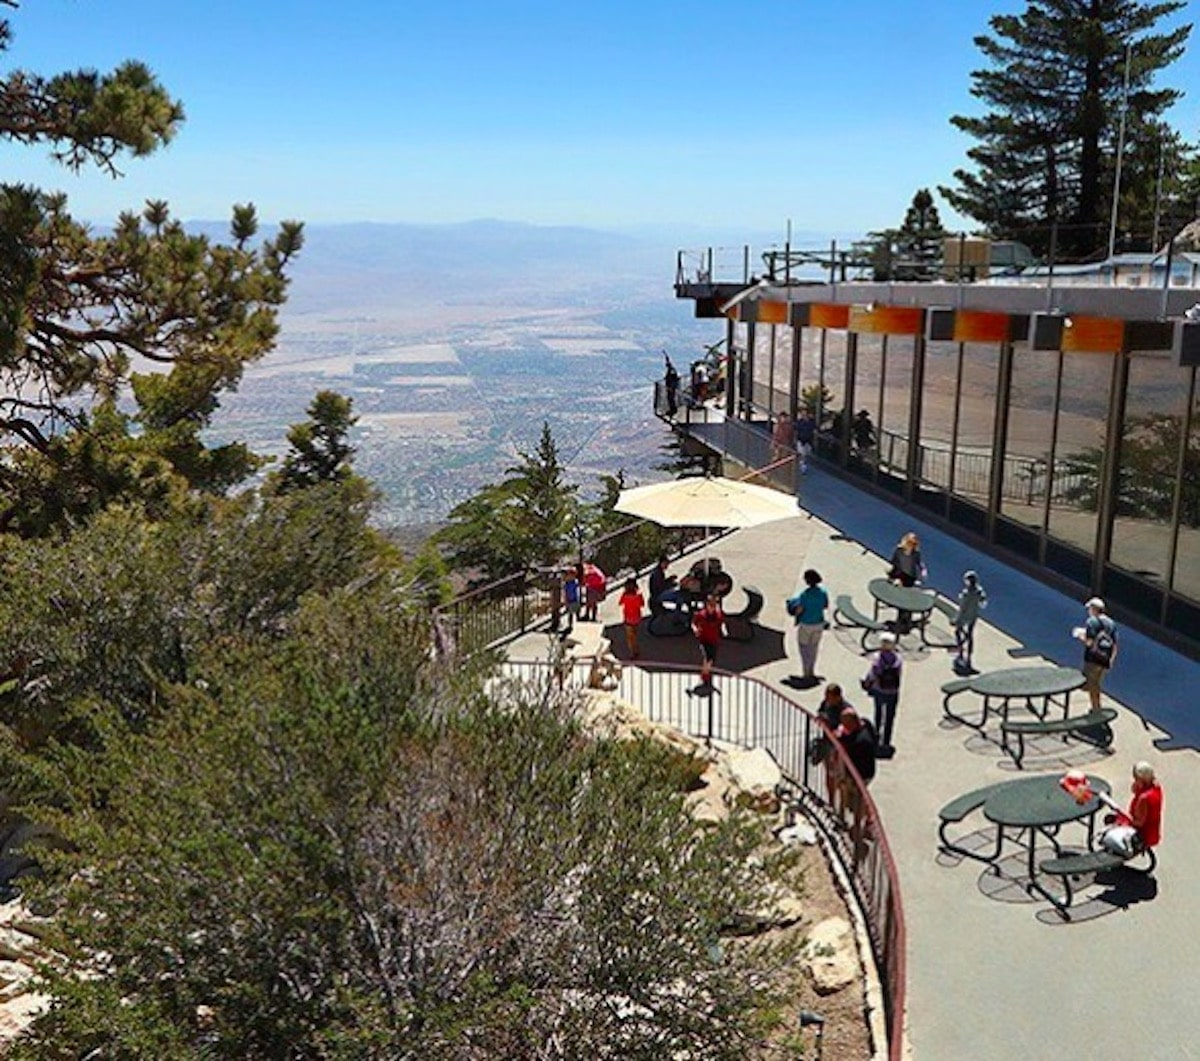 Palm Springs Tramway to spend $13 million to upgrade the Mountain Station